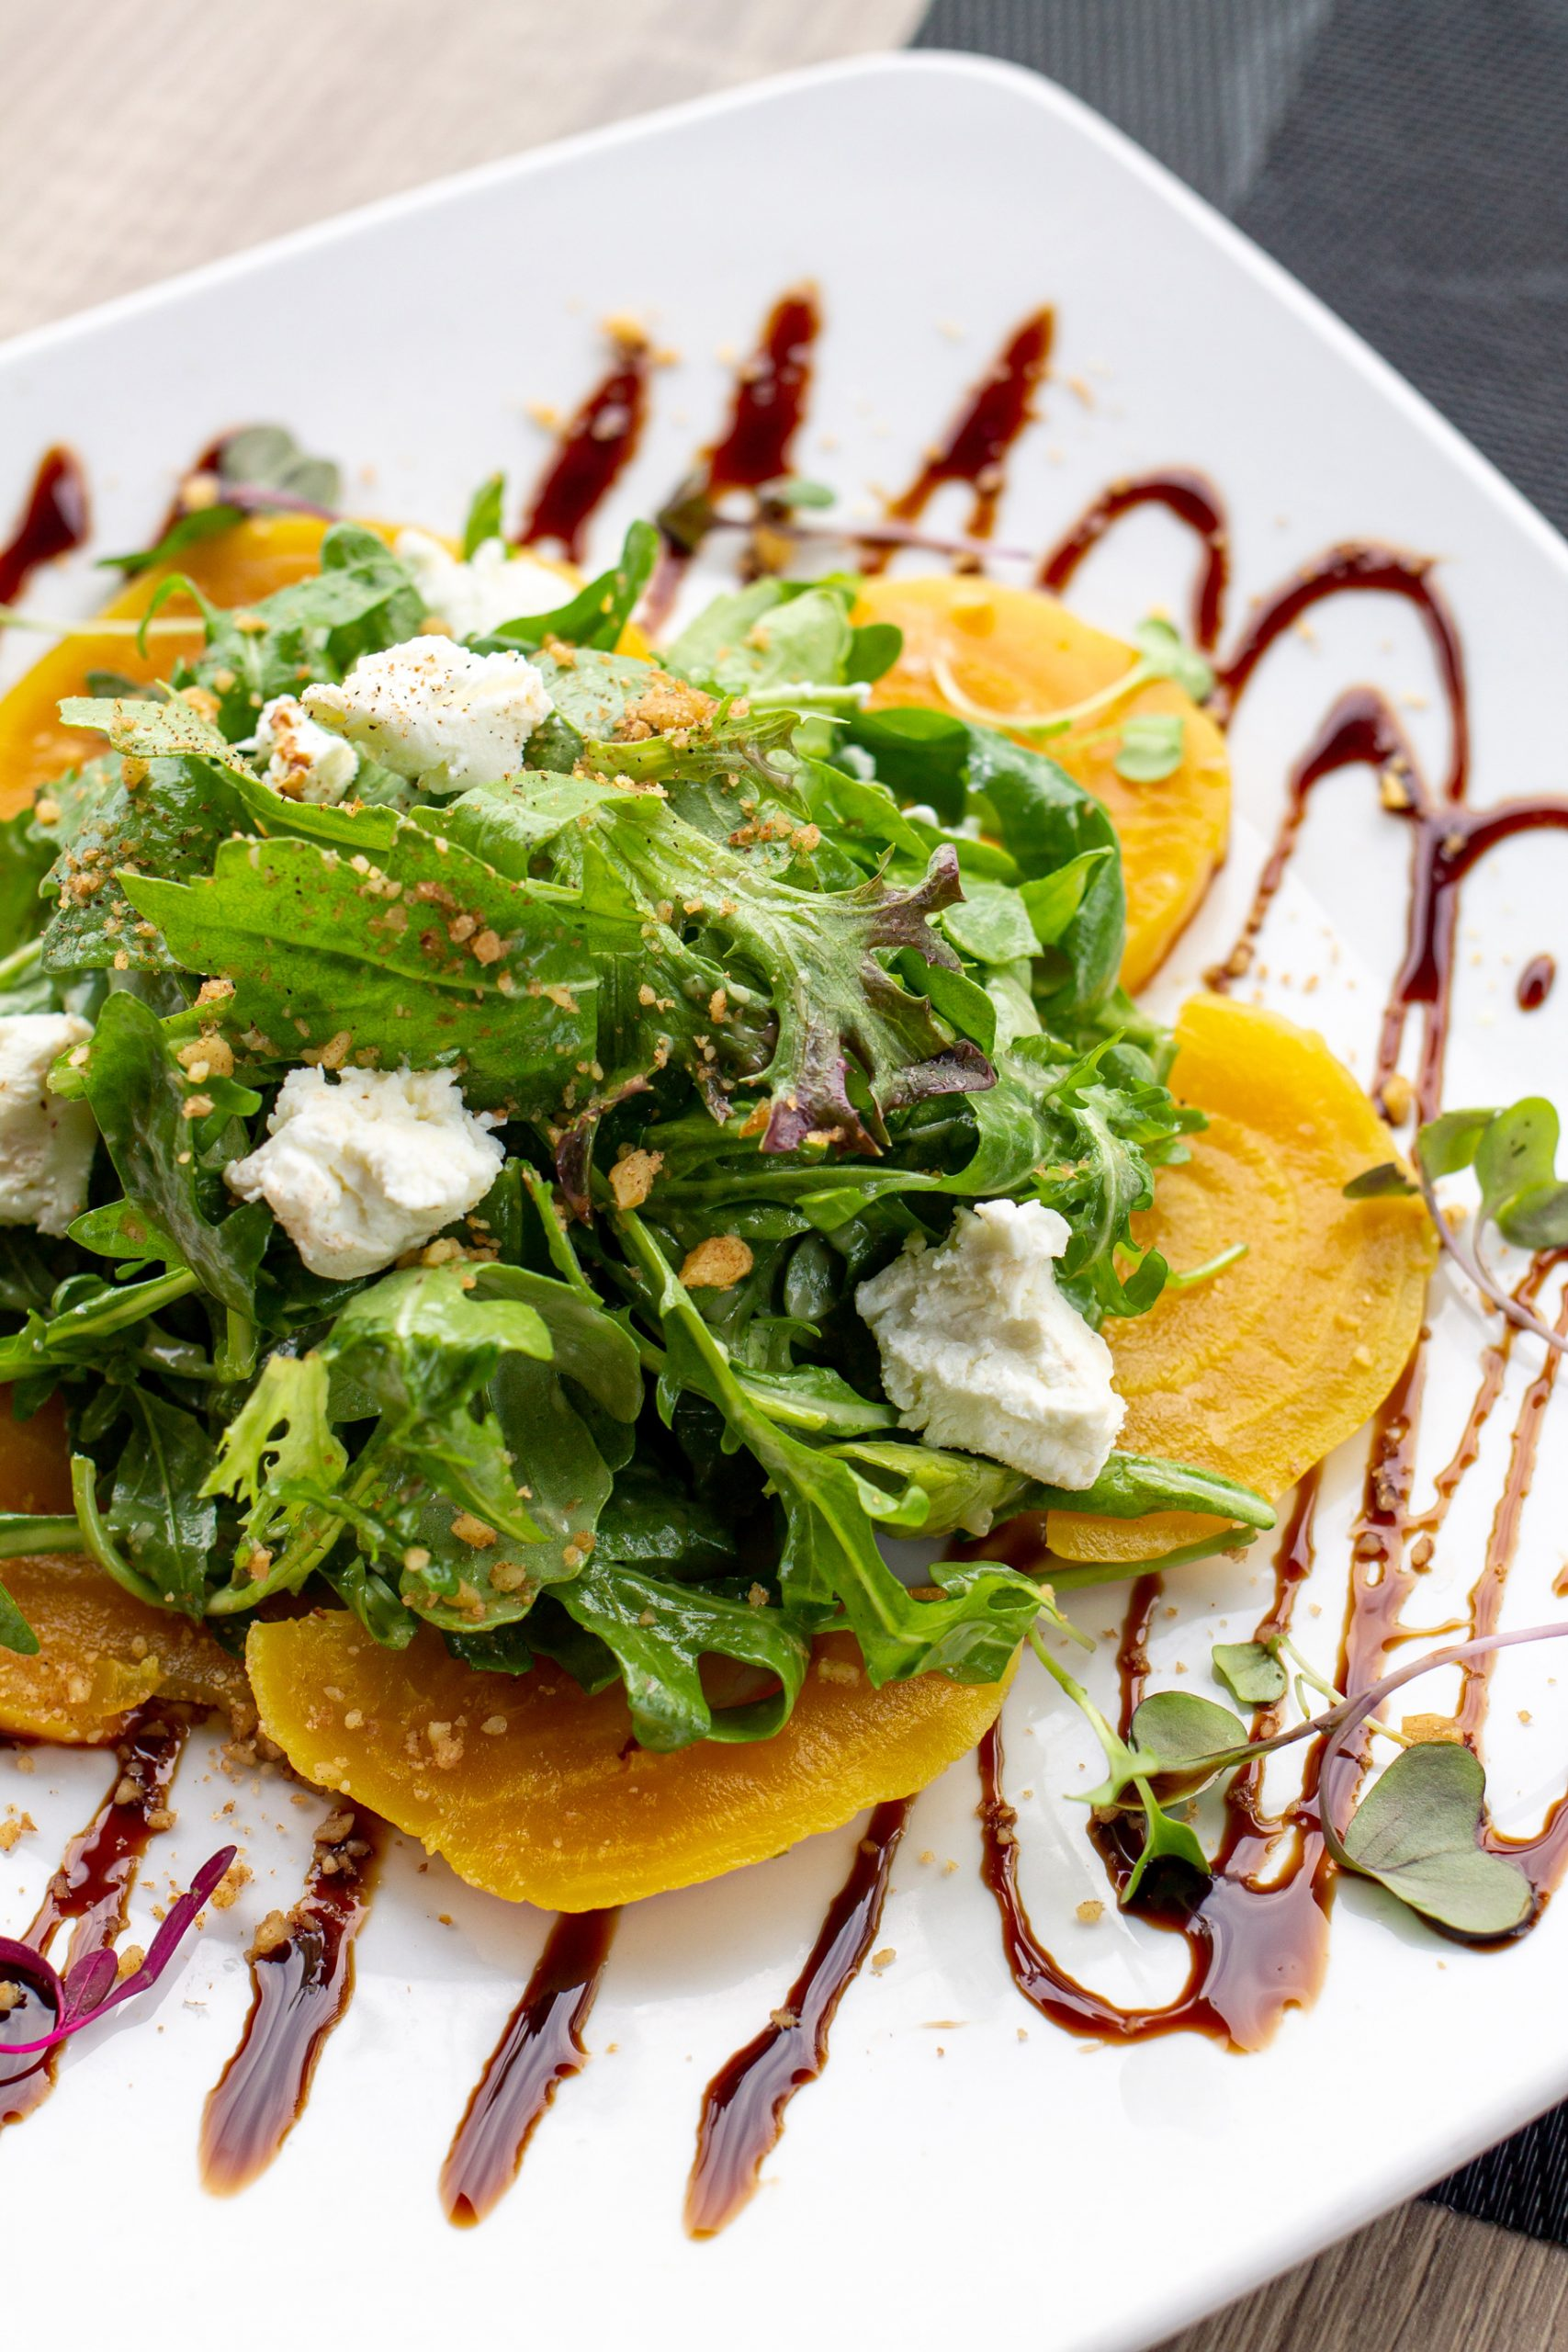 Golden Beets, Arugula and Goat Cheese on a large white plate.